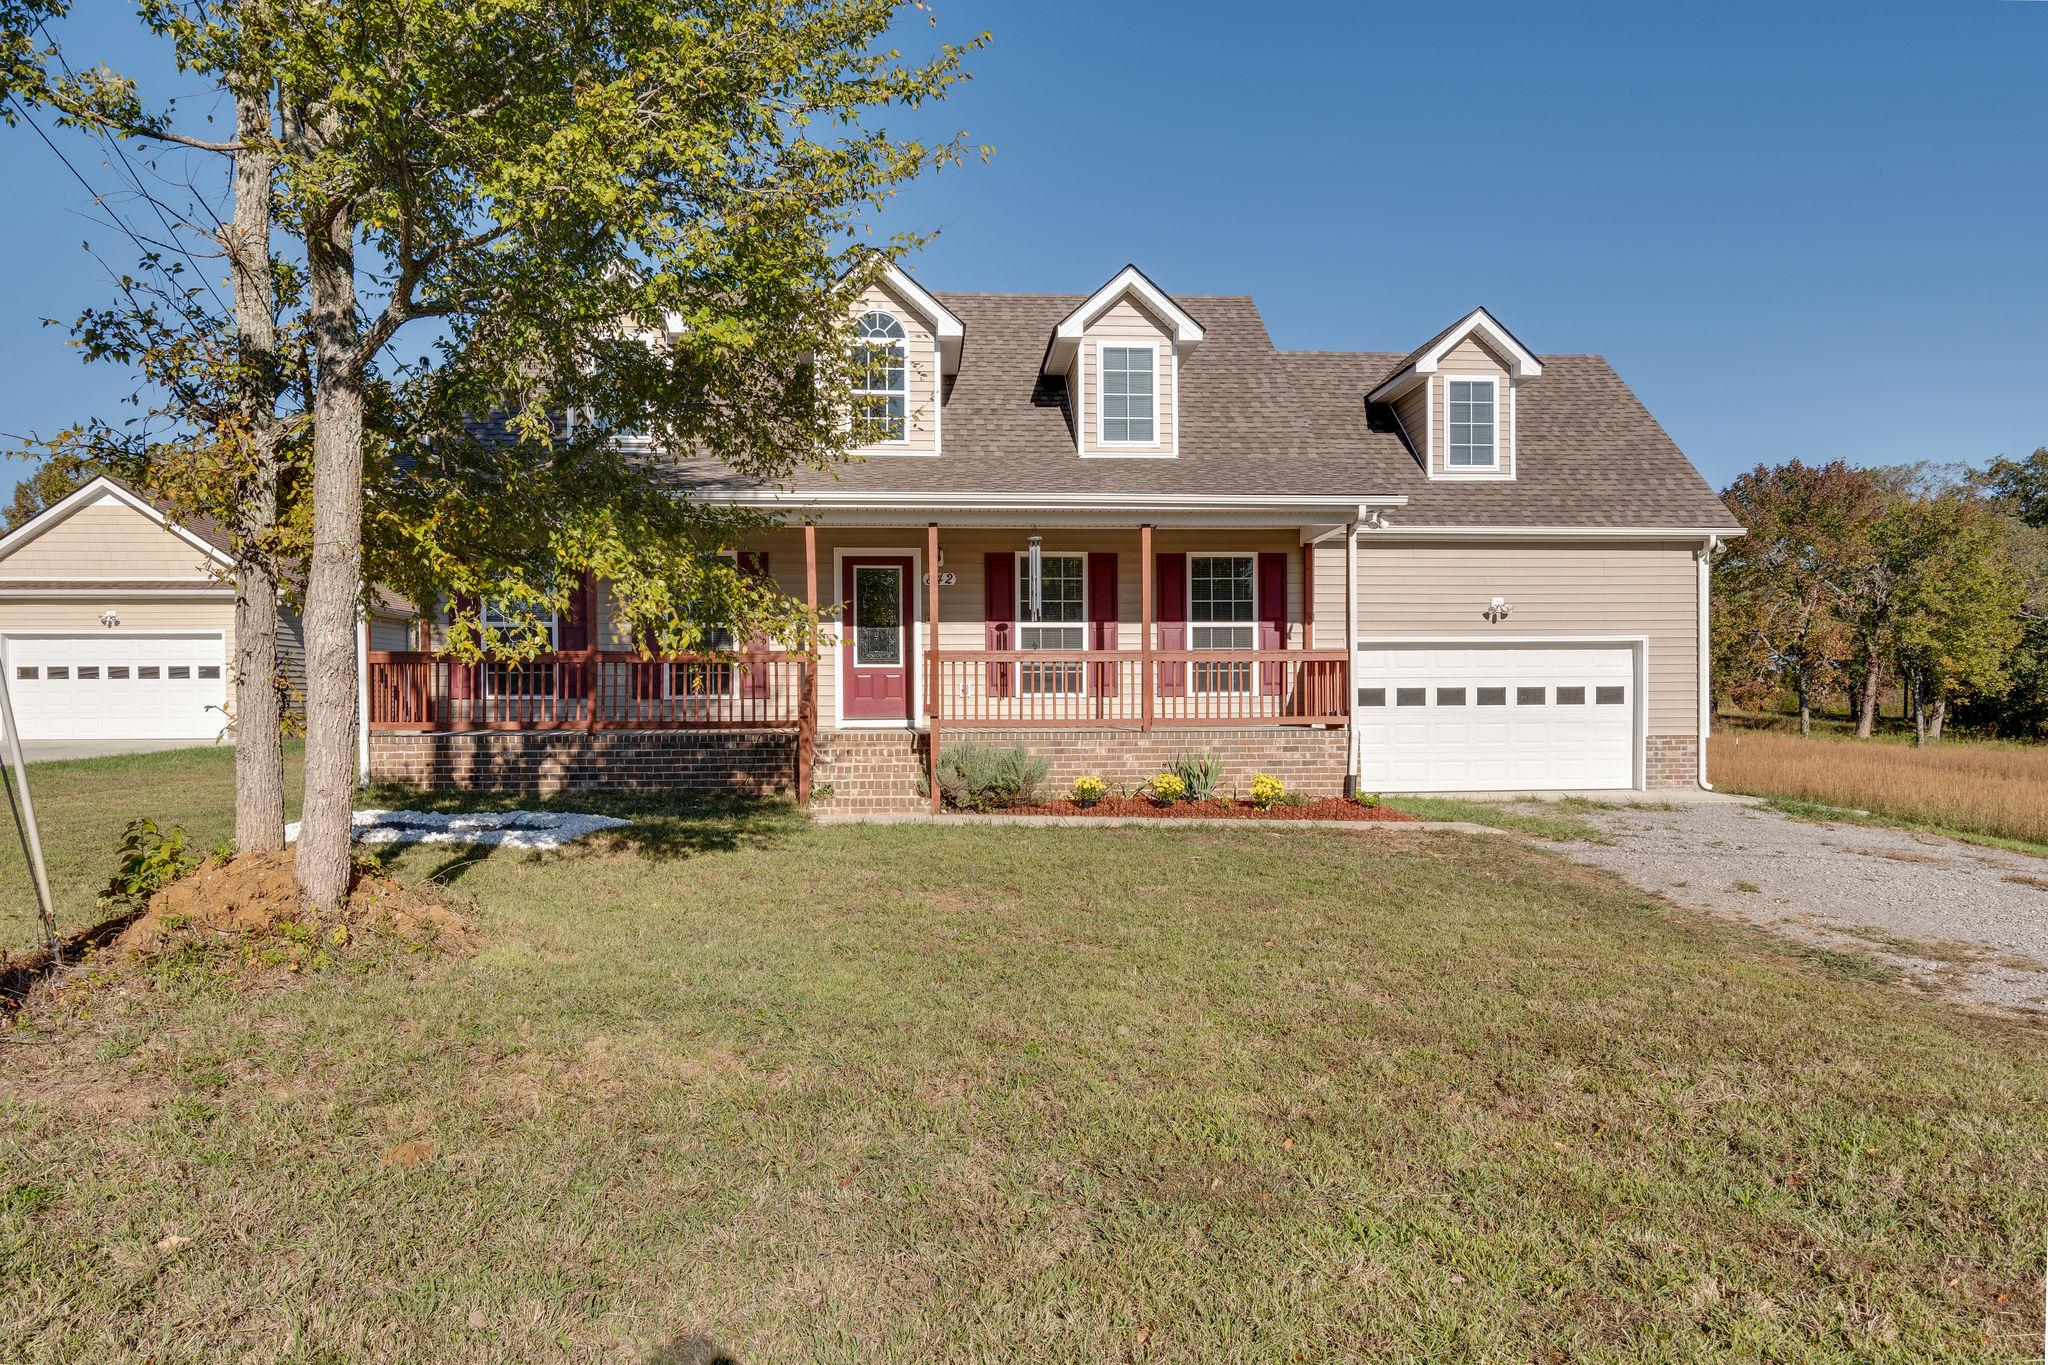 842 Todd Ave, Lewisburg, TN 37091 - Lewisburg, TN real estate listing